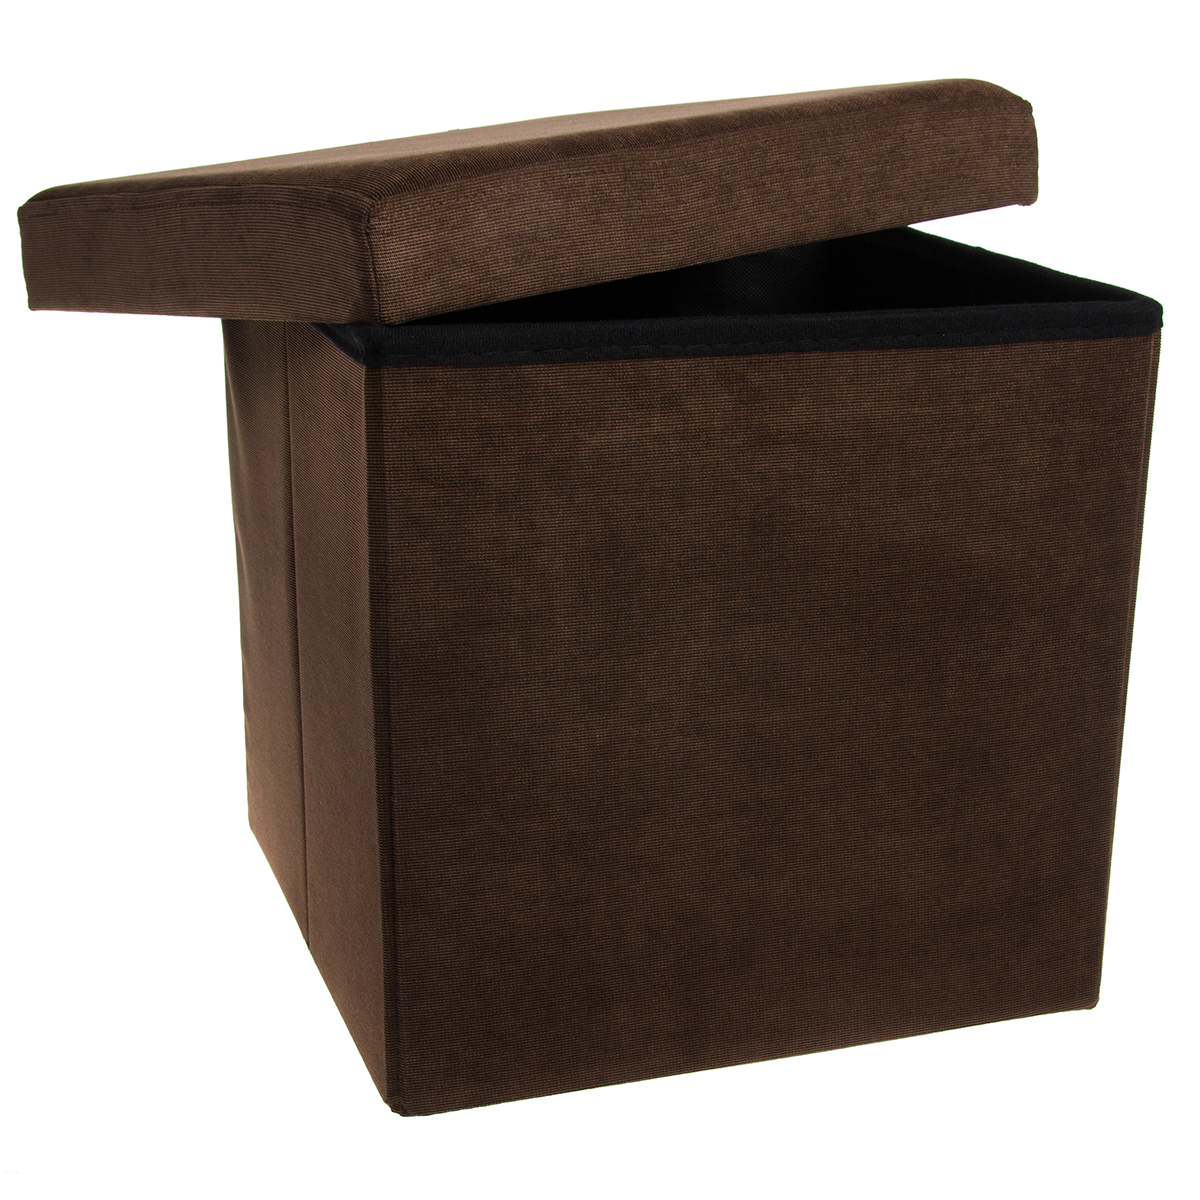 Storage-Ottoman-Cube-Folding-Fabric-Square-Foot-Rest-  sc 1 st  eBay & Storage Ottoman Cube Folding Fabric Square Foot Rest Coffee Table ... islam-shia.org